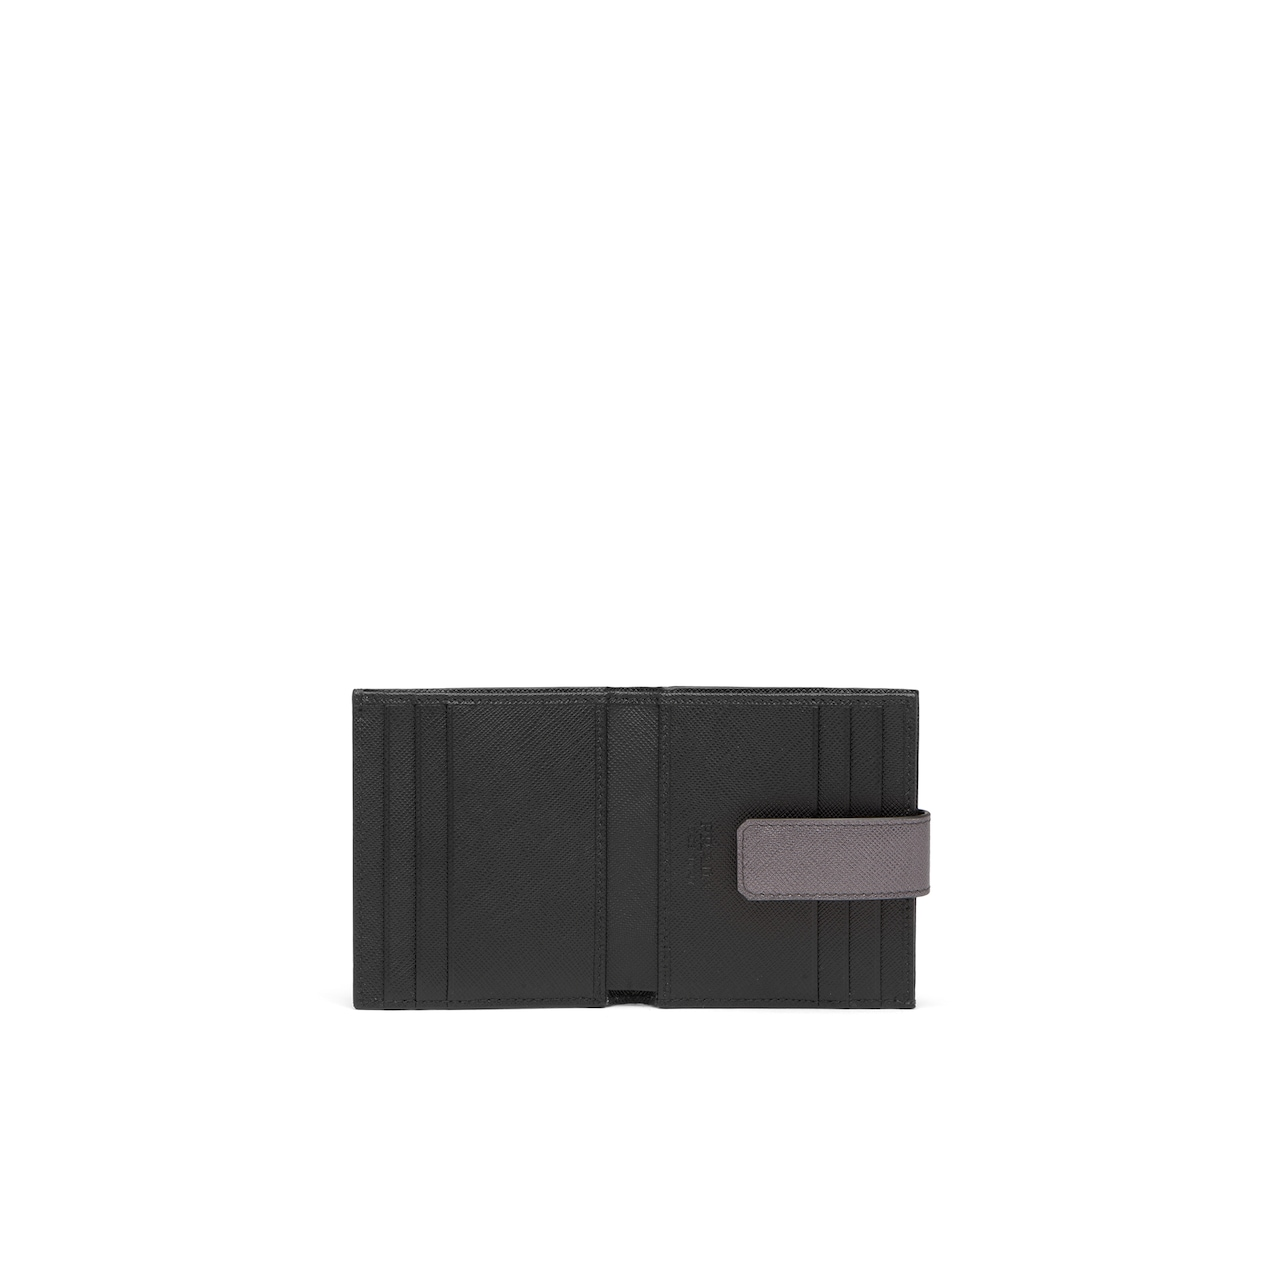 Prada Saffiano leather card holder 4